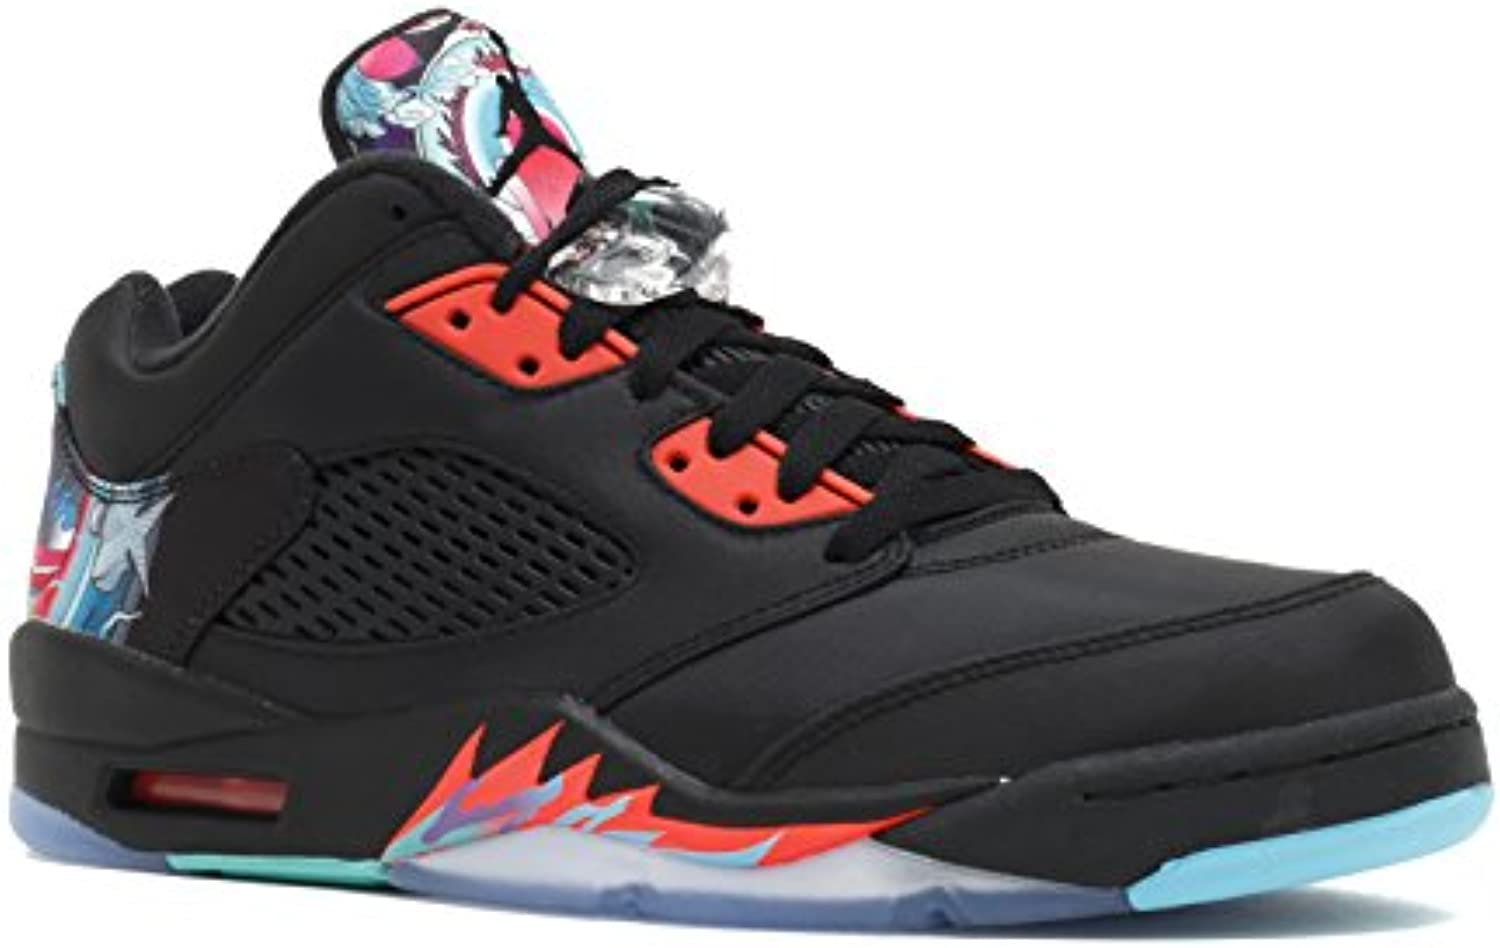 AIR JORDAN 5 RETRO LOW CNY 'CHINESE NEW YEAR' - 840475-060